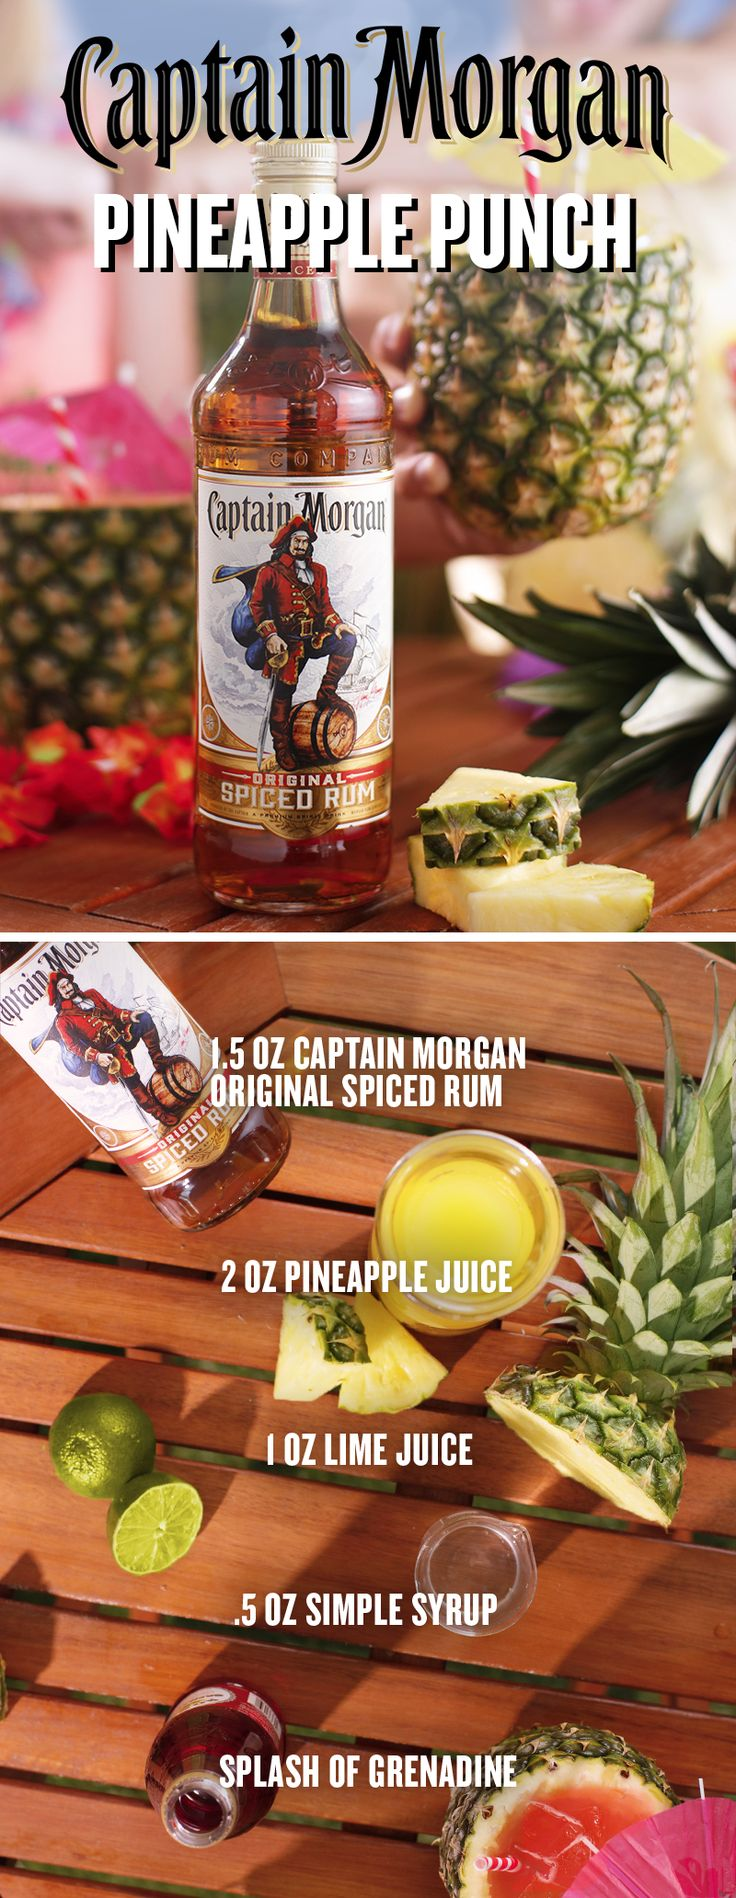 Summer like a Captain by packing a punch in a pineapple. To mix up a Pineapple Punch, add 1.5 oz Captain Morgan Original Spiced Rum, 2 oz pineapple juice, .5 oz simple syrup, and 1 oz lime juice in a mixing glass with ice (splash of grenadine optional). Shake hard and strain over fresh ice. Garnish with a pineapple cube and cilantro sprig pint, Captain.